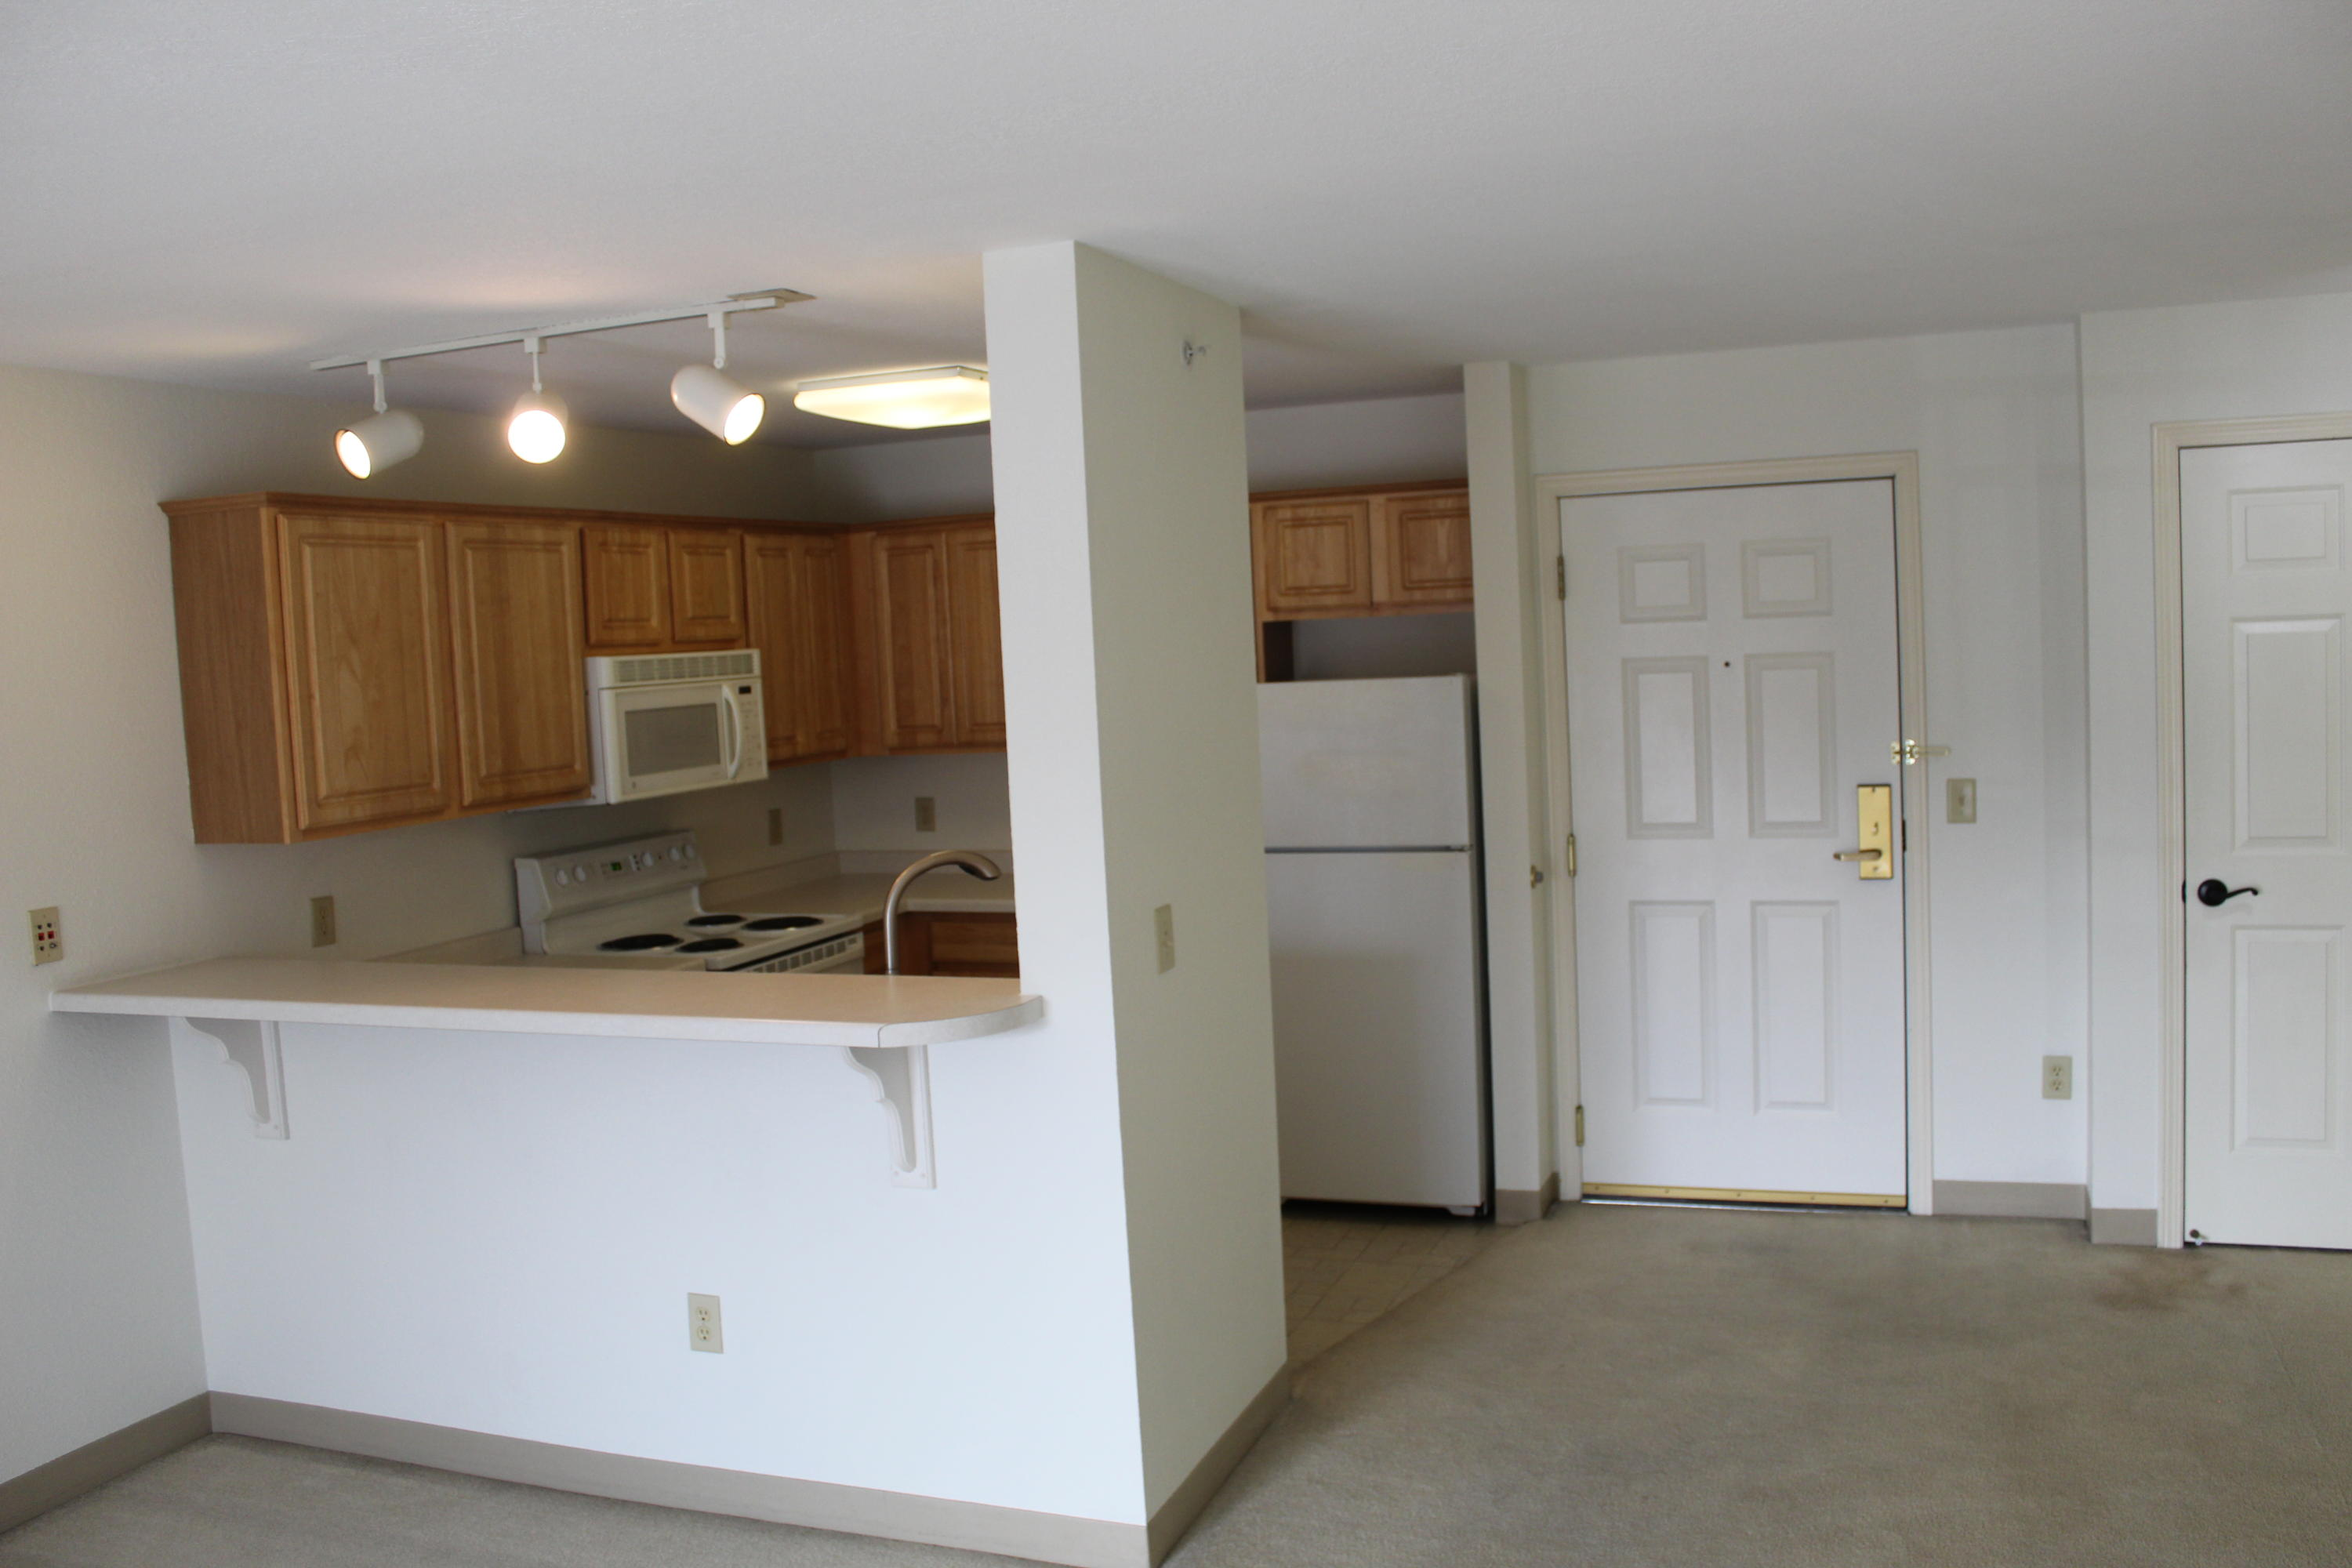 100 Main St, Waukesha, Wisconsin 53186, 1 Bedroom Bedrooms, ,1 BathroomBathrooms,Condominiums,For Sale,Main St,2,1618446